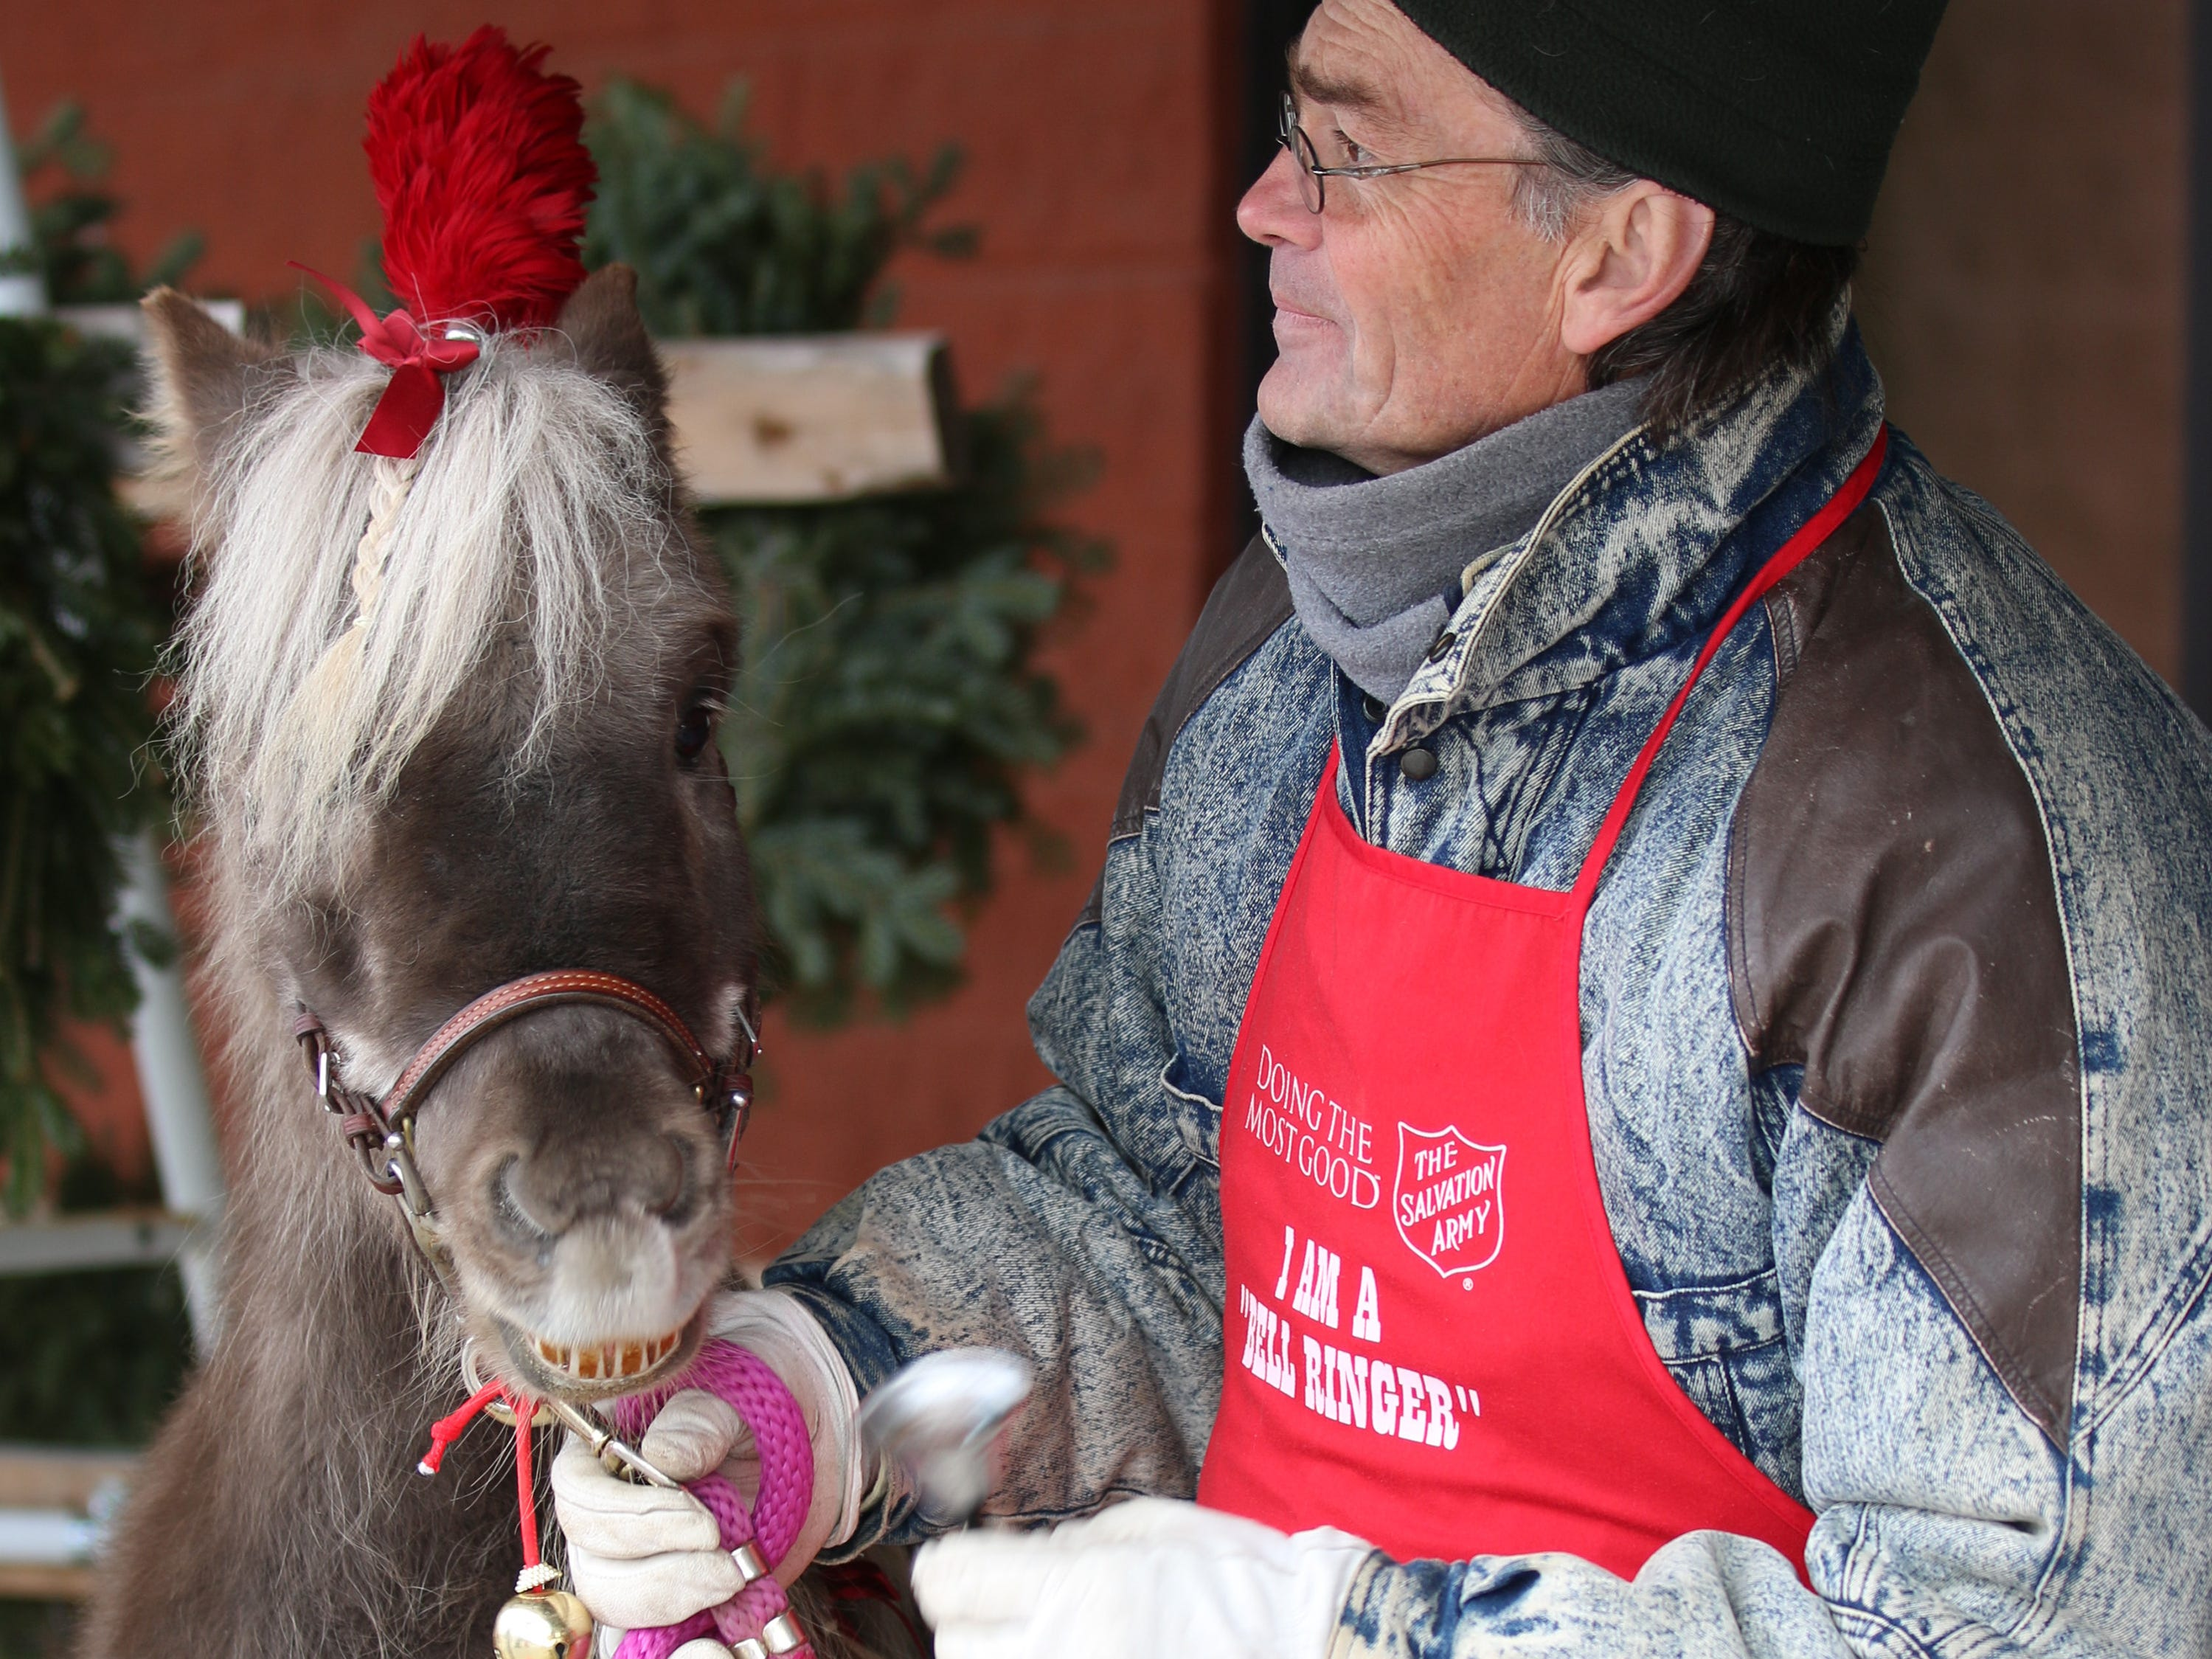 Mini-horse Mr. T and handler Mark Webb ring the bell for the Sheboygan Salvation Army, Saturday November 17, 2018, in Sheboygan, Wis. The horse and Webb was part of the Salvation Army's Red Kettle Campaign kickoff.